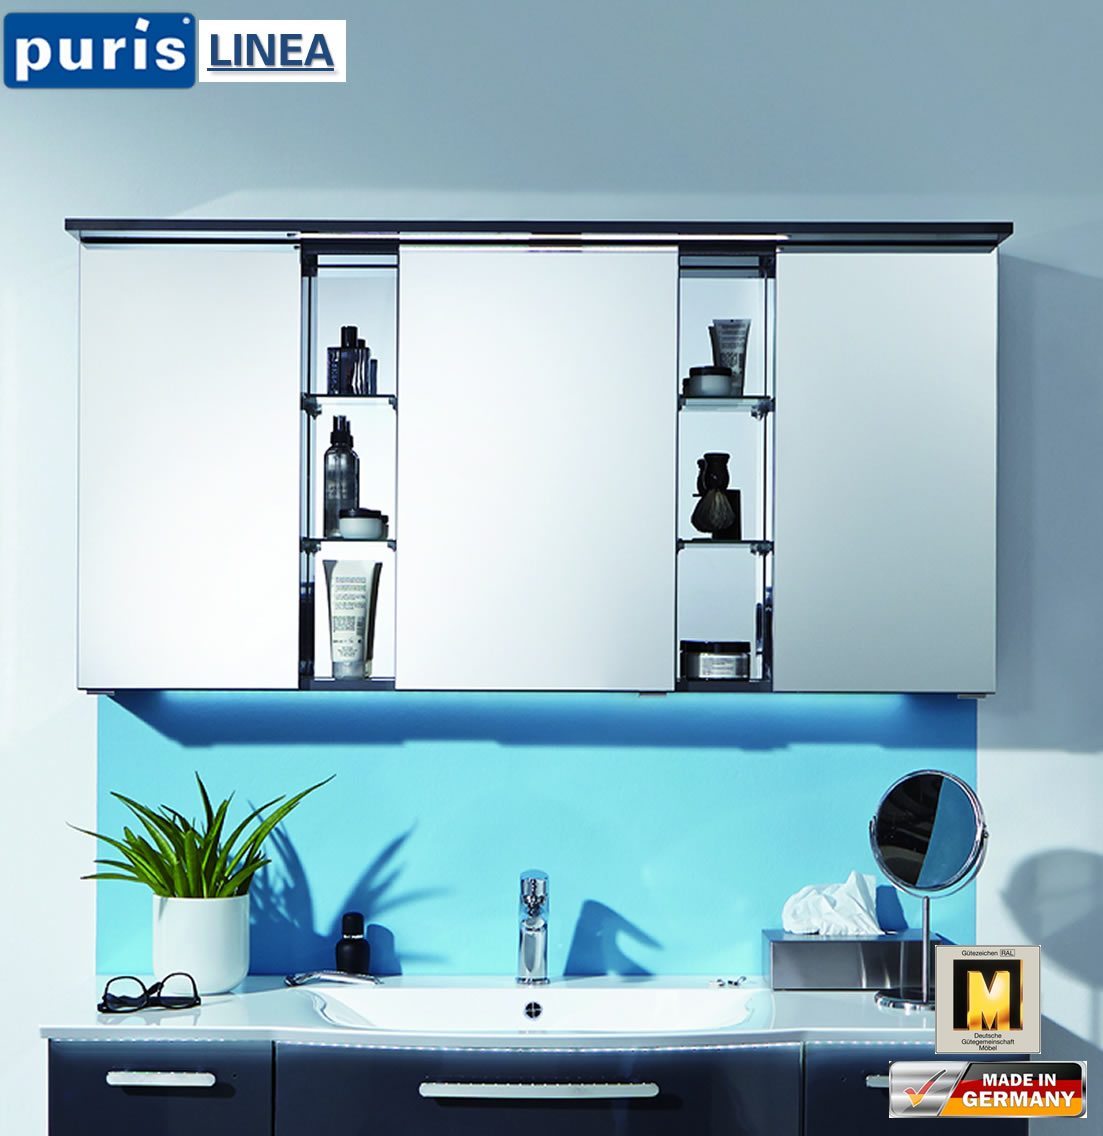 puris linea led spiegelschrank 130 cm s2a4213s1 impuls home. Black Bedroom Furniture Sets. Home Design Ideas